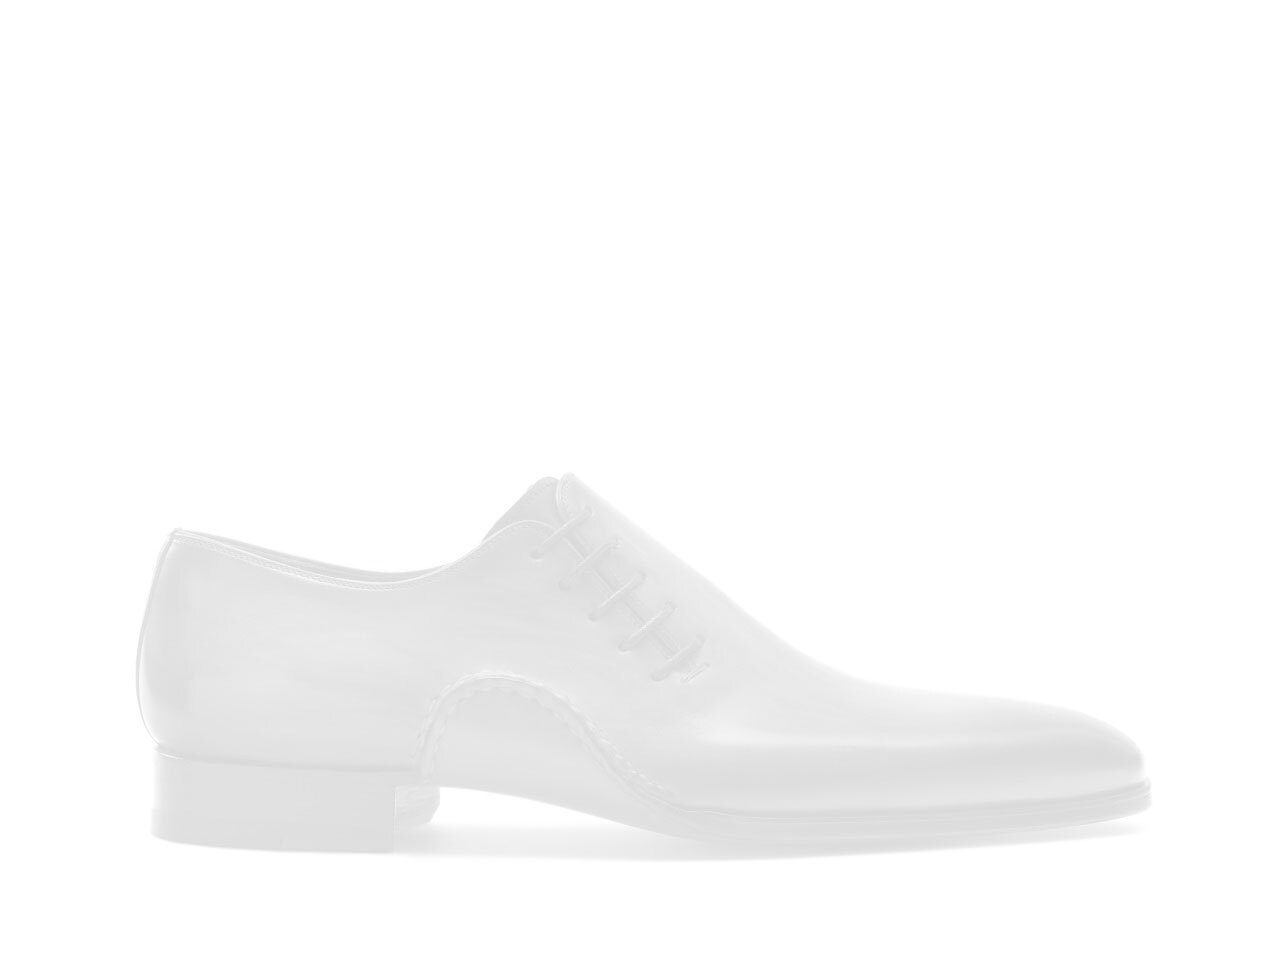 Side view of the Magnanni Sapor Black Men's Sneakers